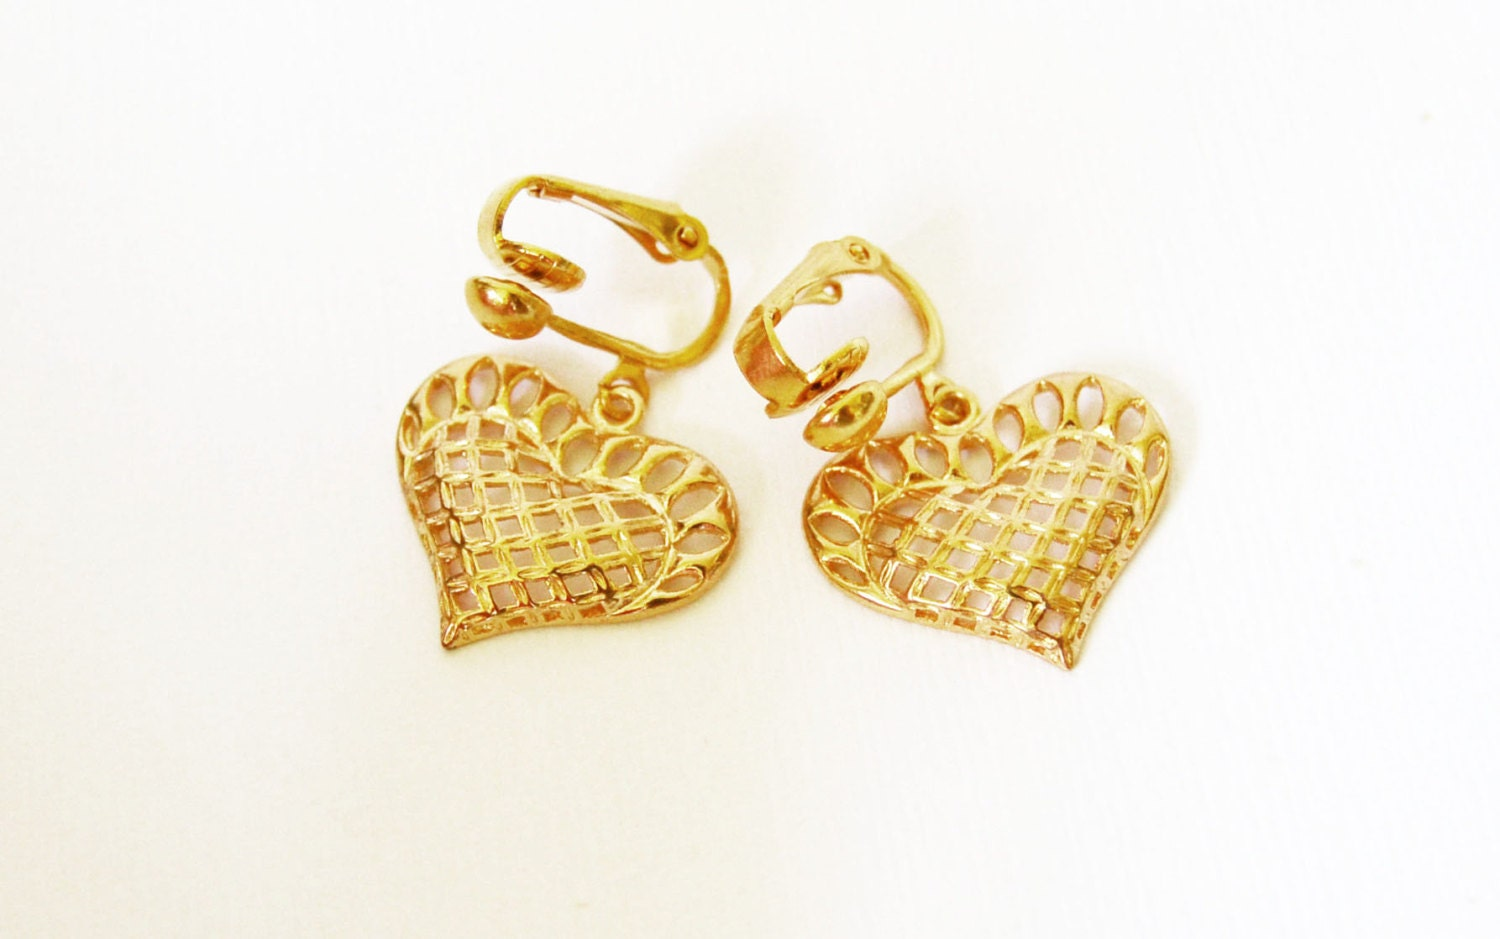 heart earrings gold - photo #27